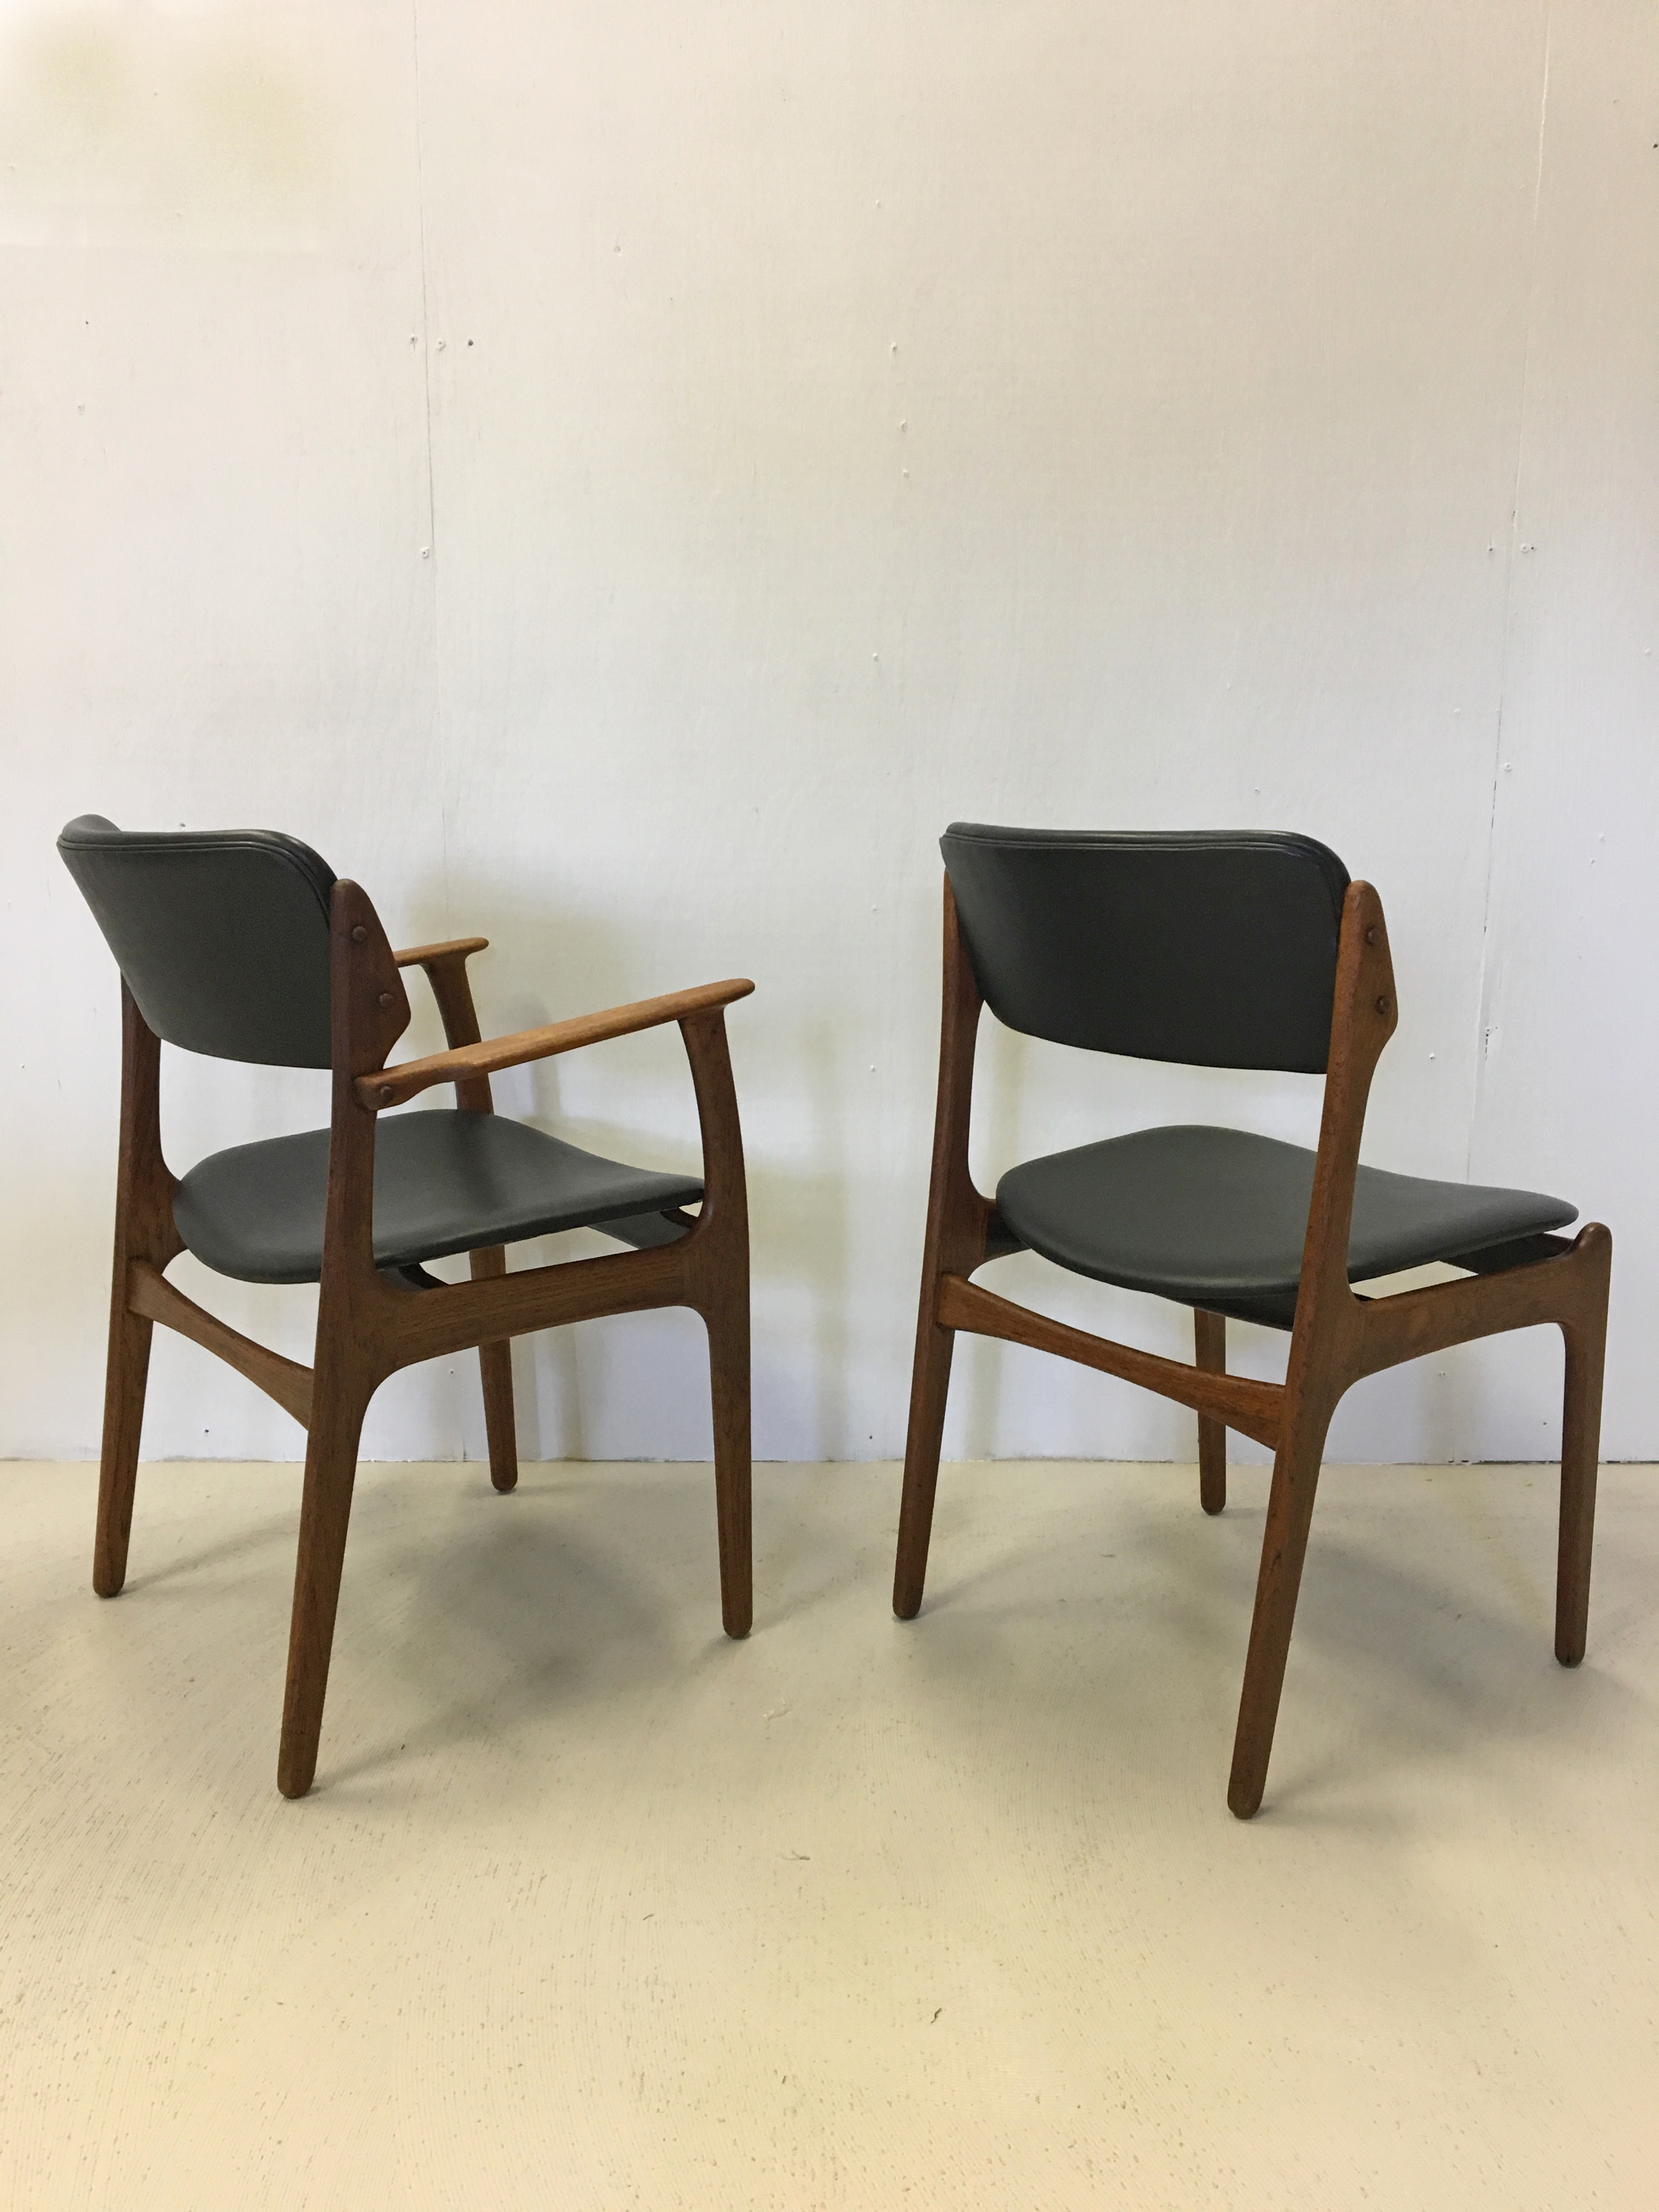 Eric Buck for Oddense Danish Modern Teak Dining Chairs